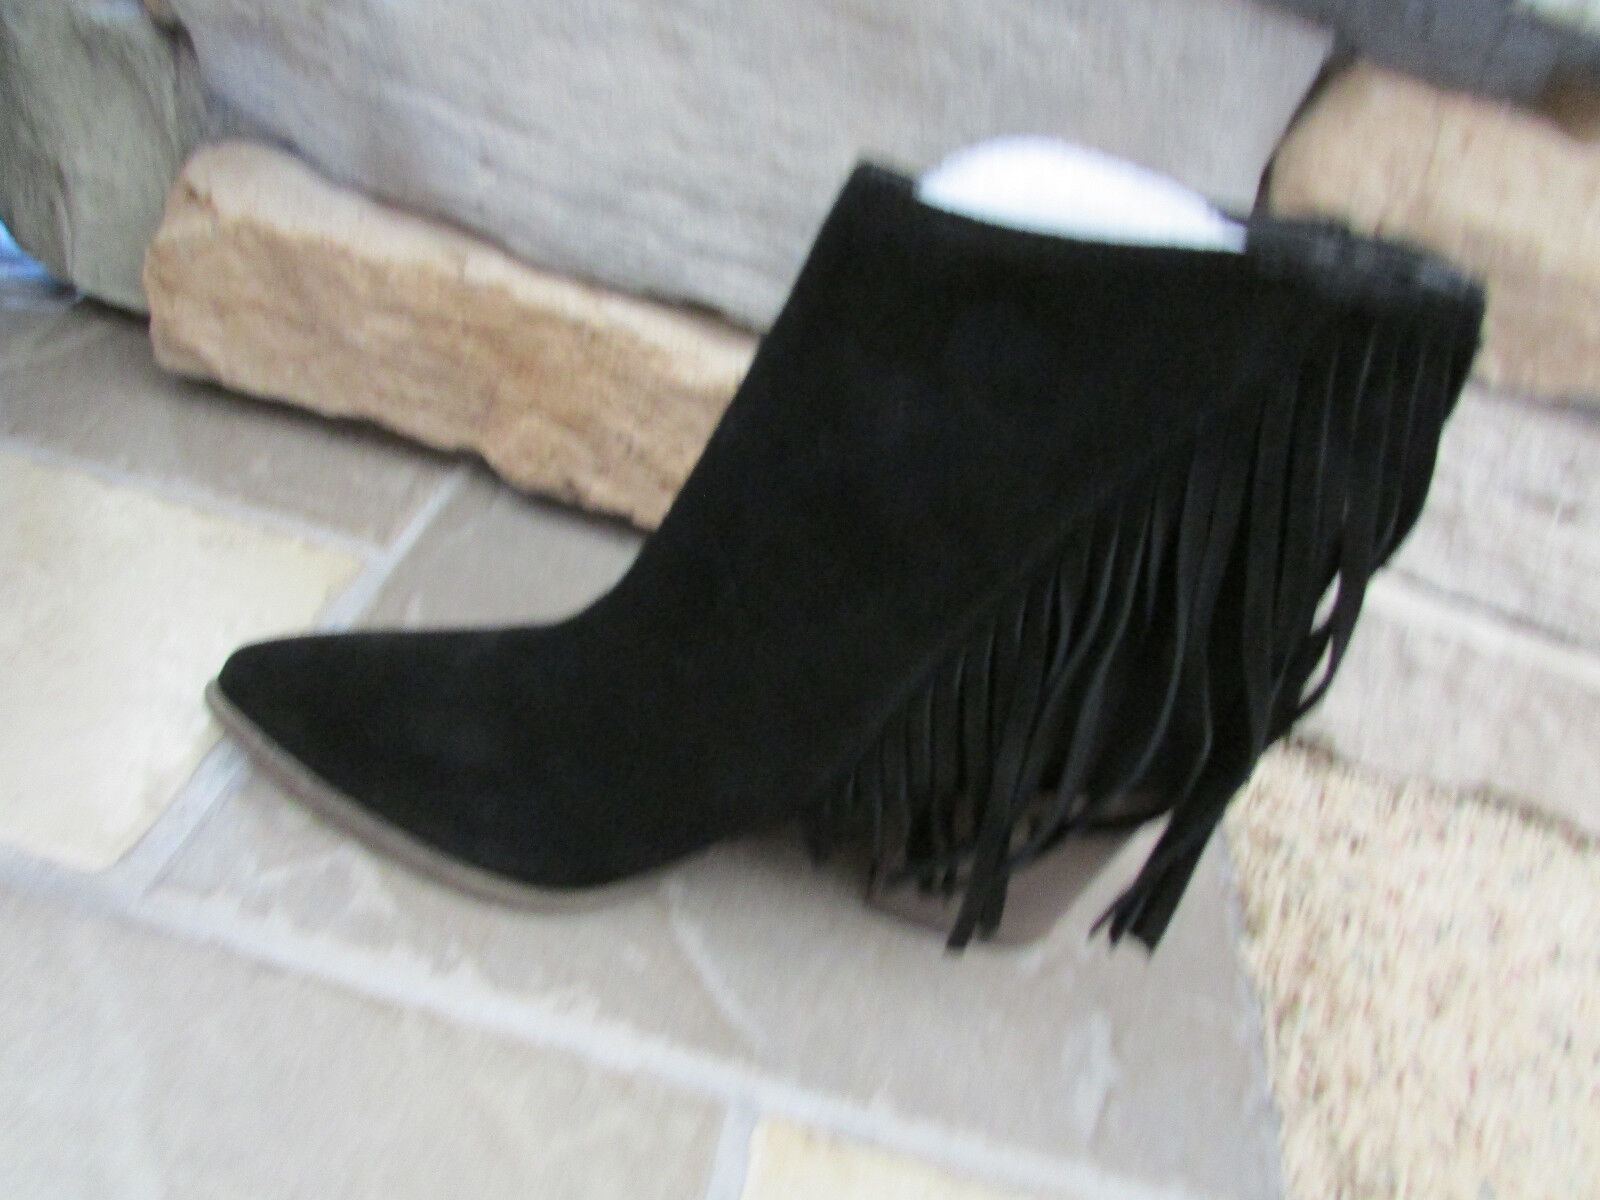 NEU STEVE MADDEN COUNTRYY SUEDE BOOTIES ANKLE BOOTS Damenschuhe 9 BLACK FRINGE SUEDE